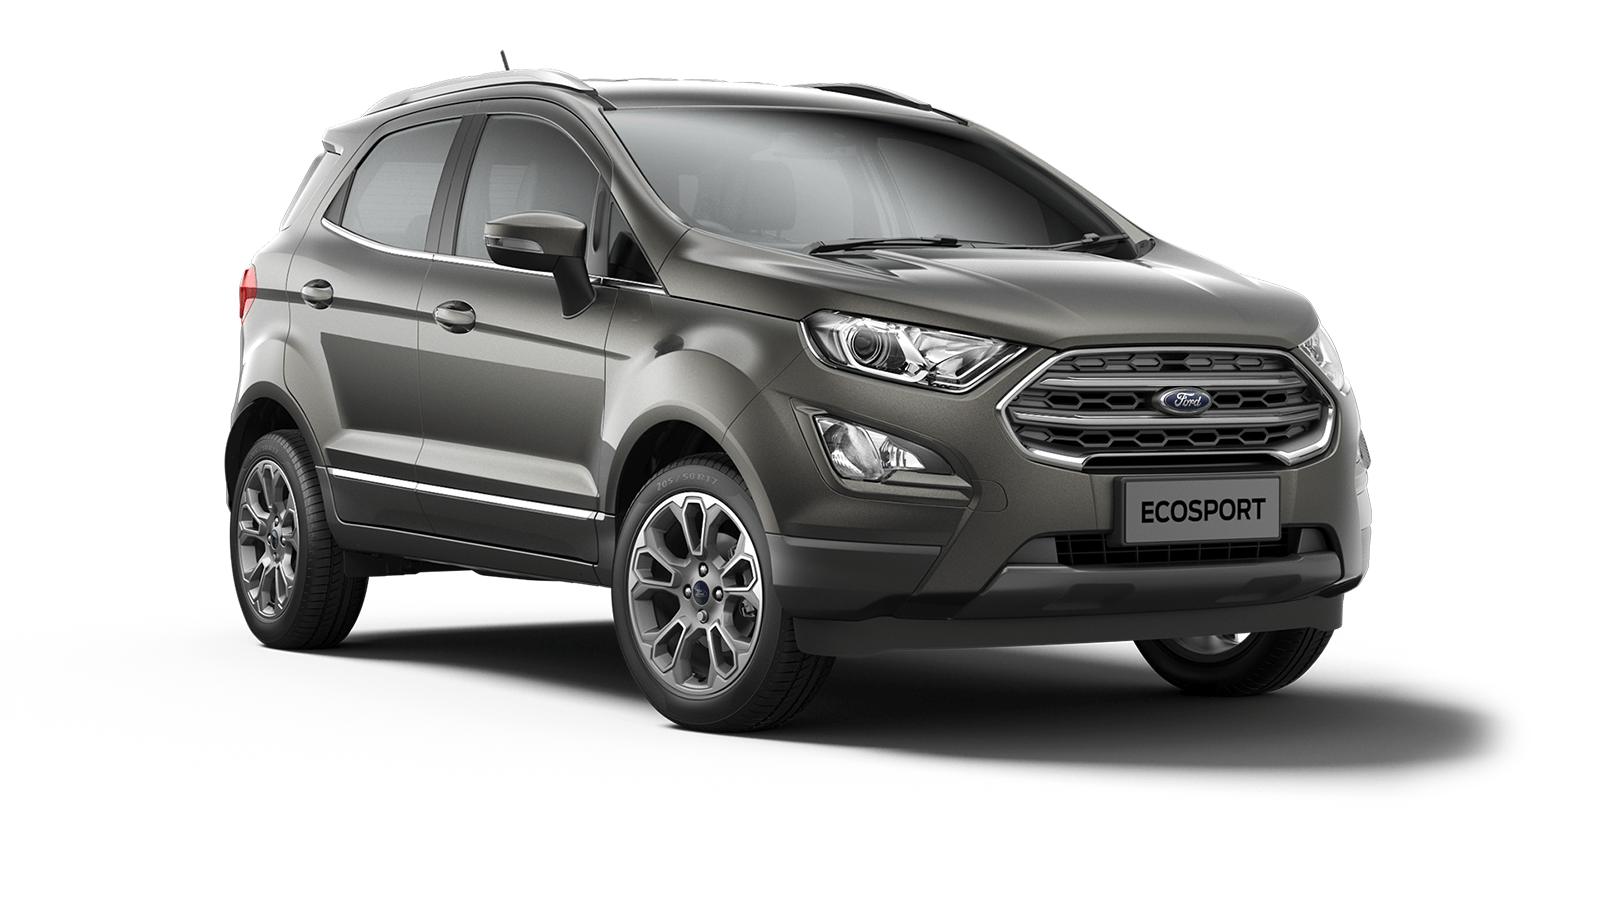 ECOSPORT Titanium 5 Door in Magnetic